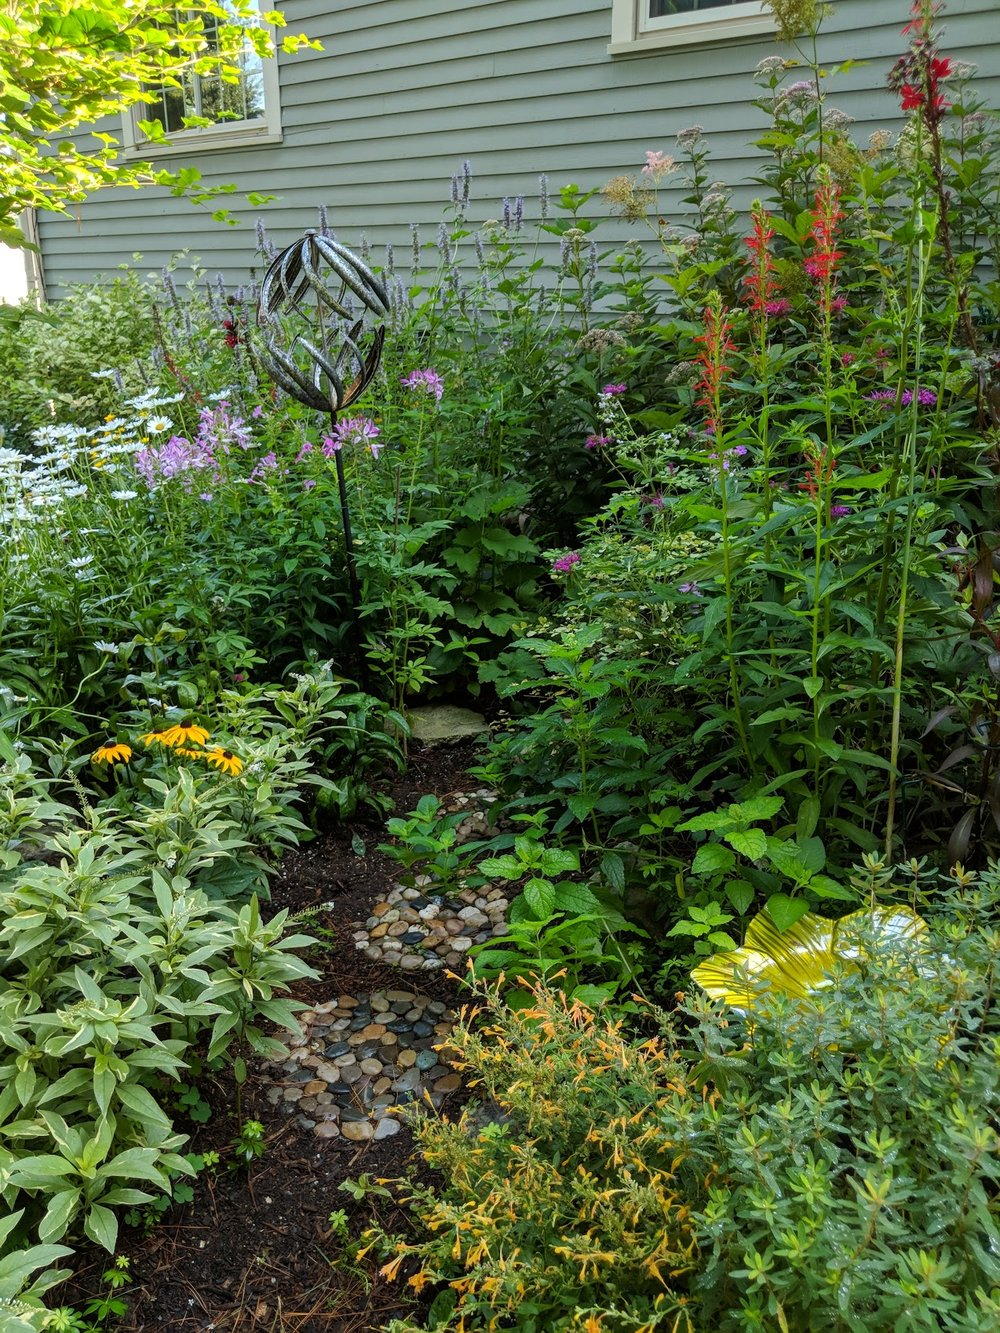 Aug 6: Stone path leads to 6' tall Joe Pye Weed in the back